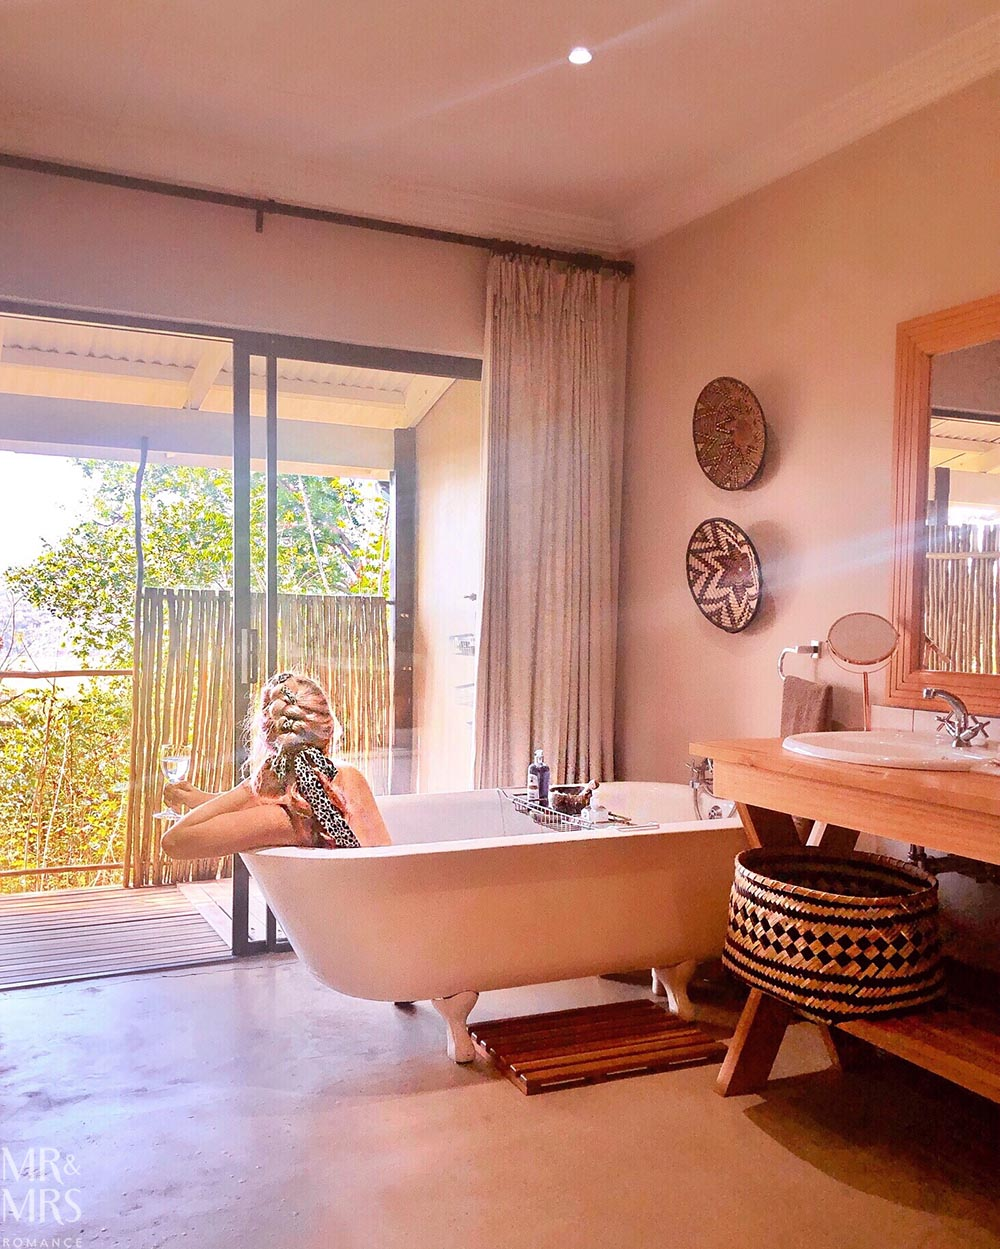 South Africa Tourism - Fugitives' Drift Lodge bath